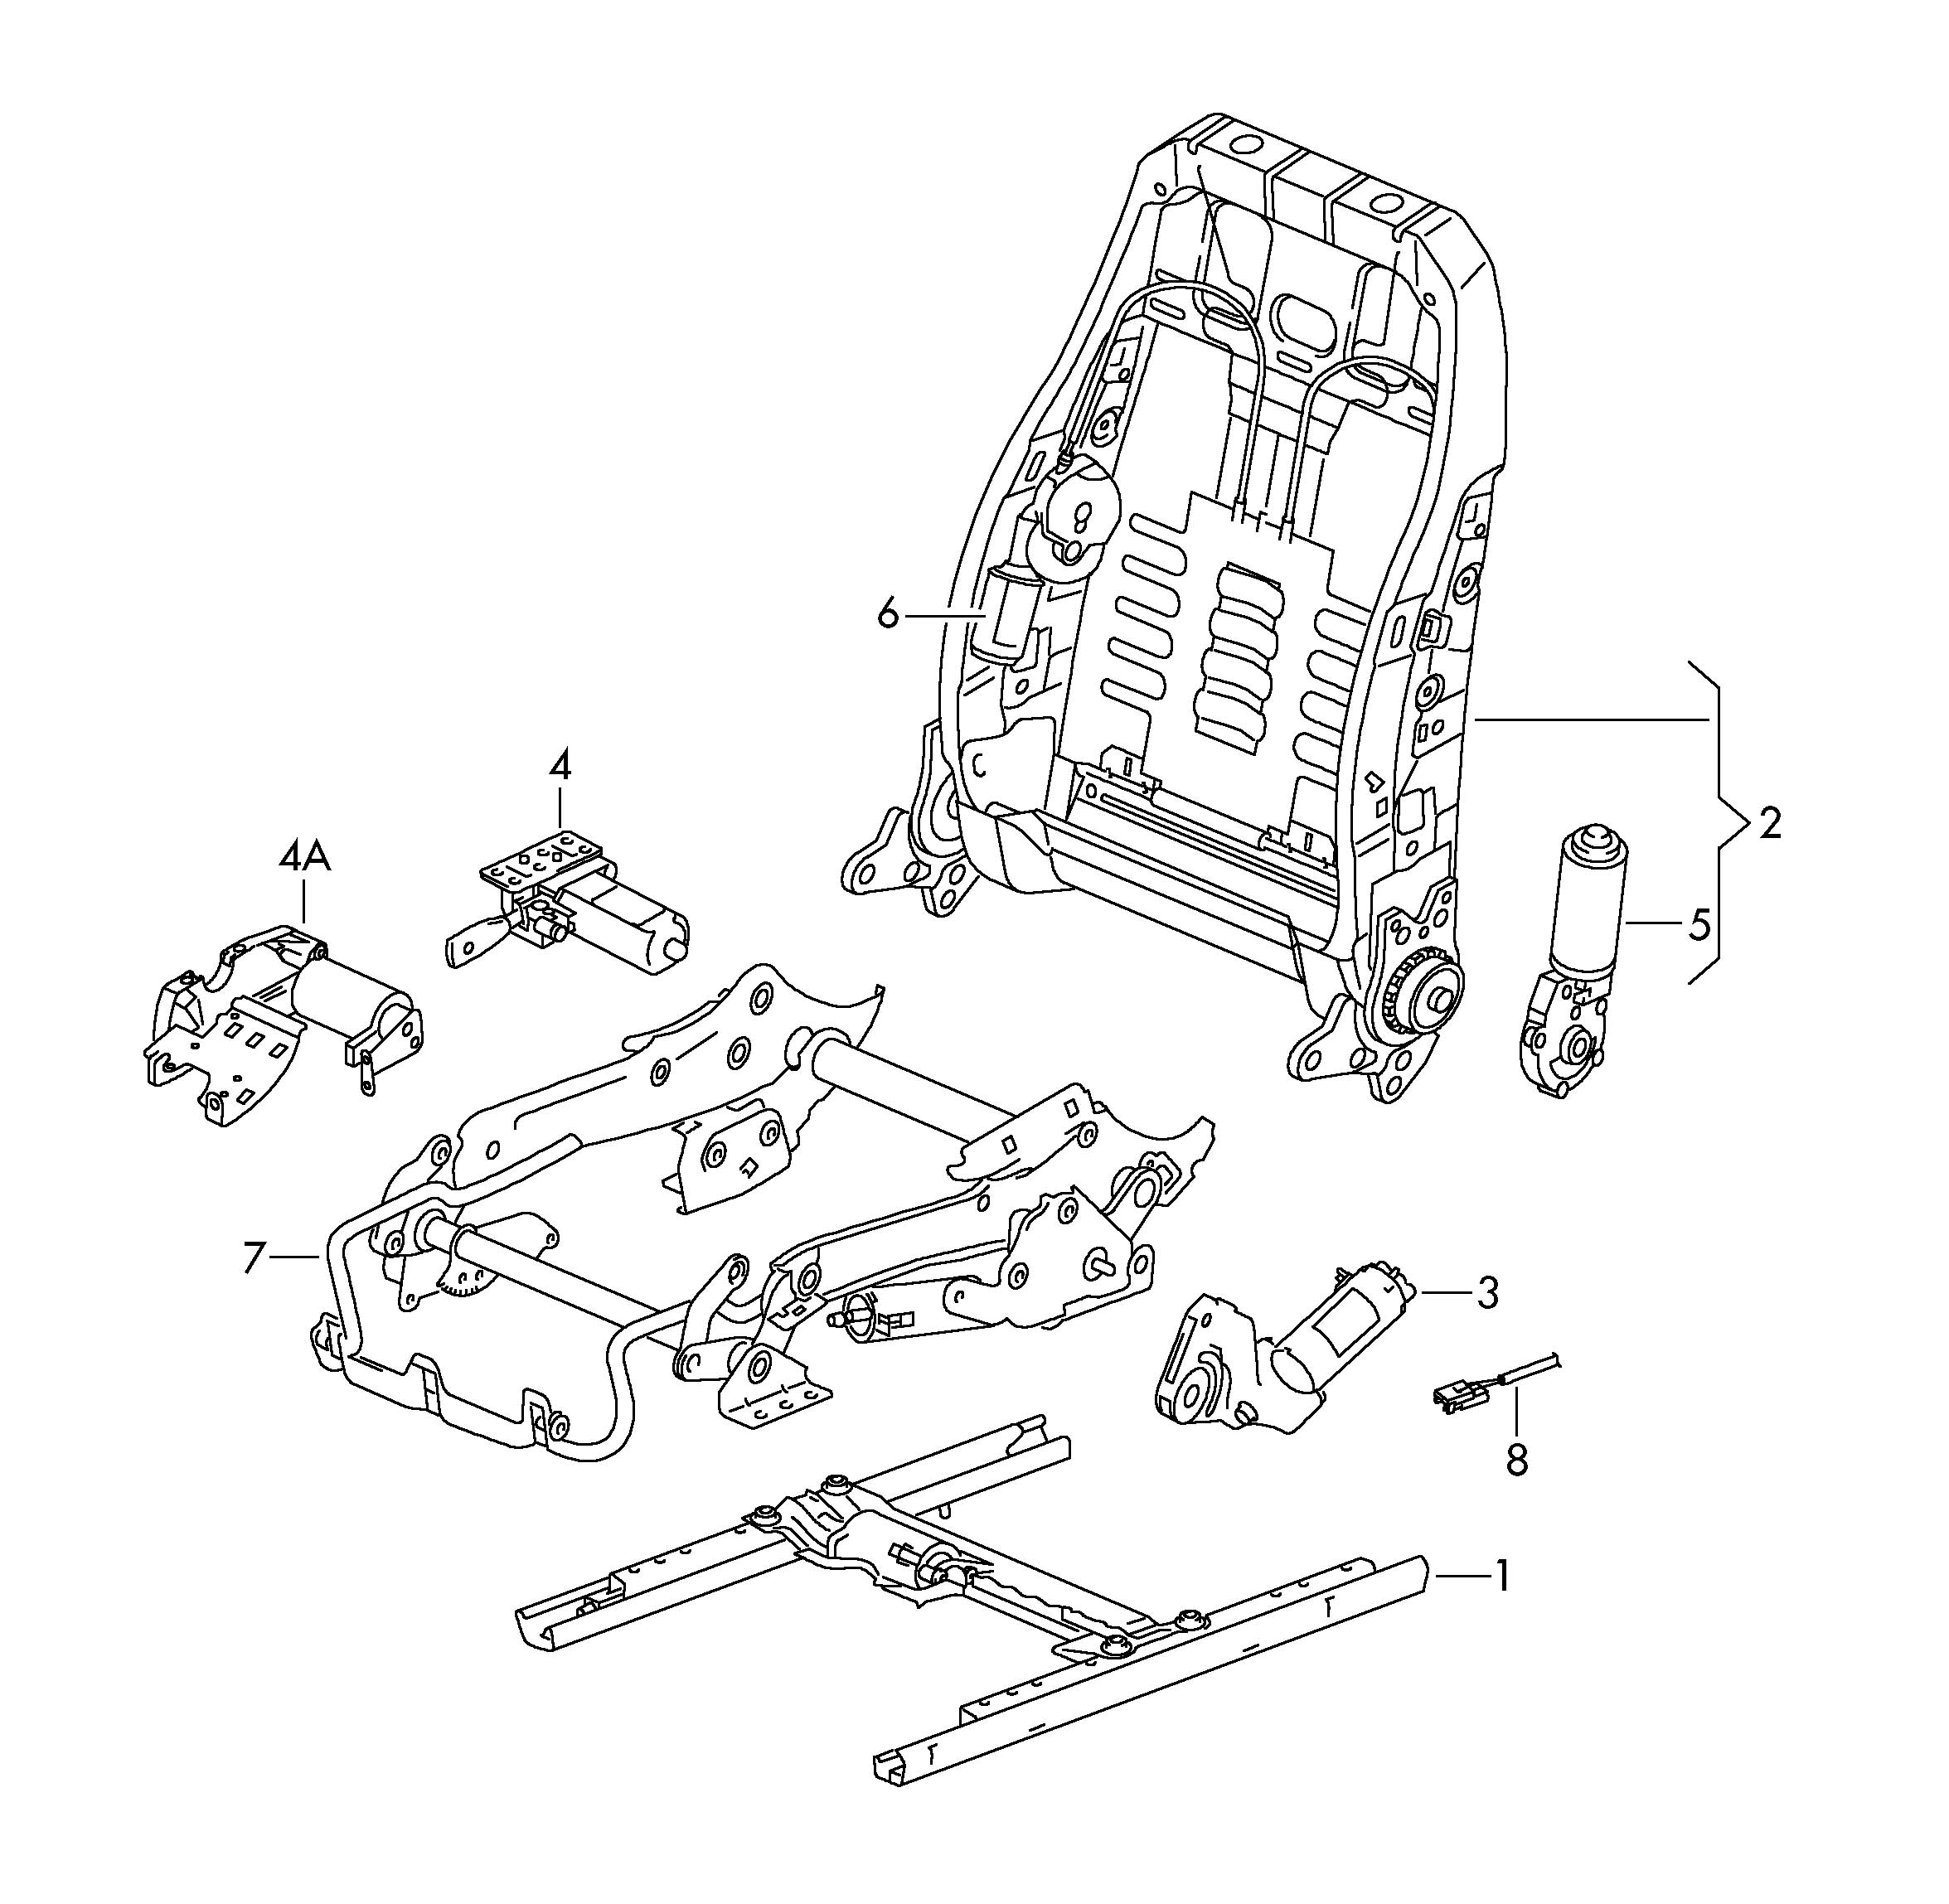 Volkswagen Touareg Electrical Parts For Seat And Backrest